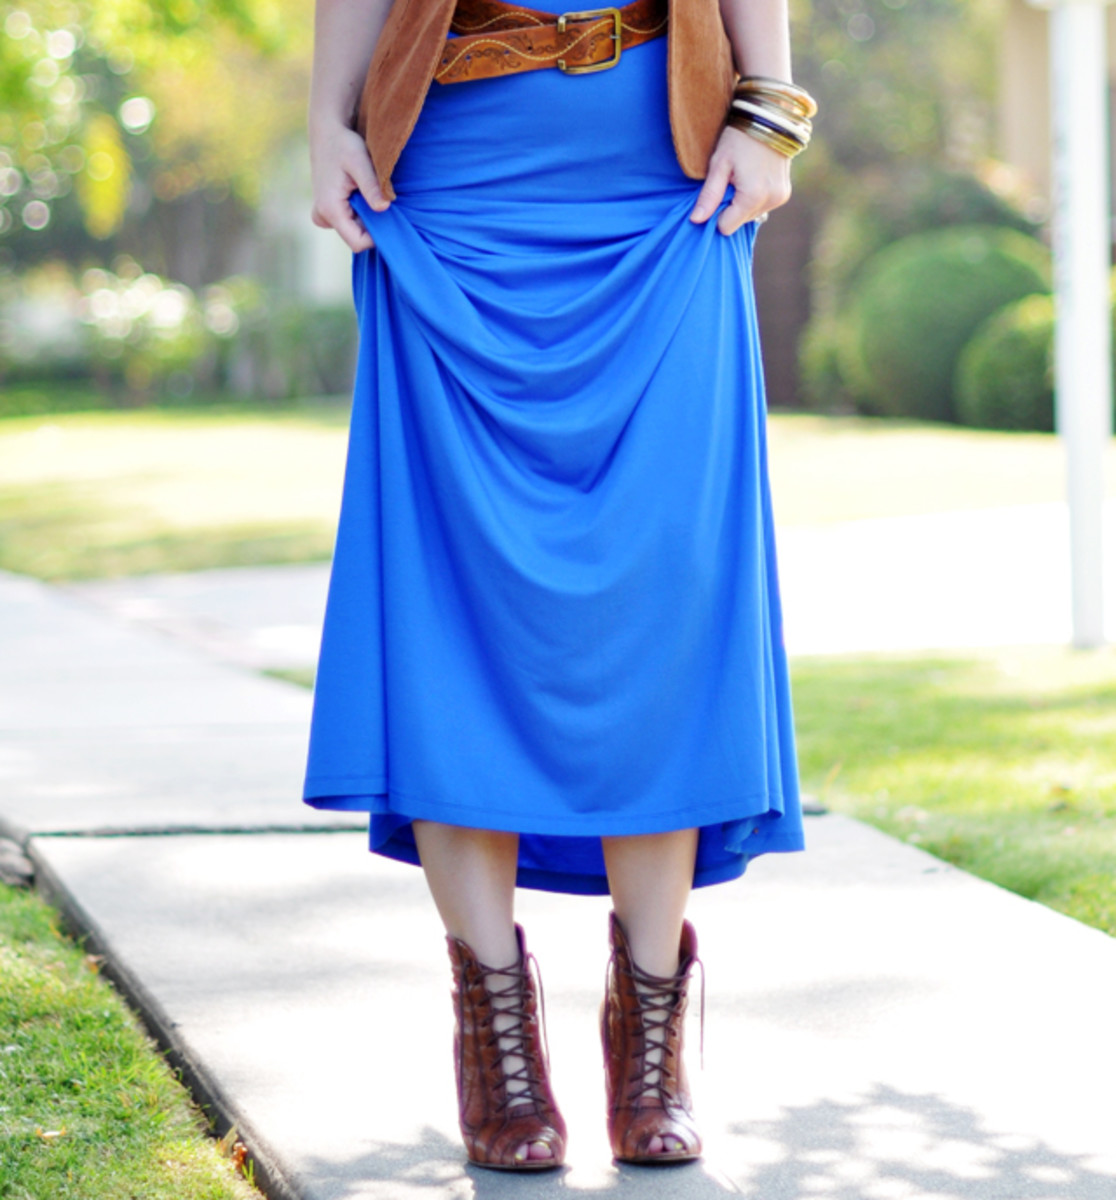 Maxi dress with lace-up boots